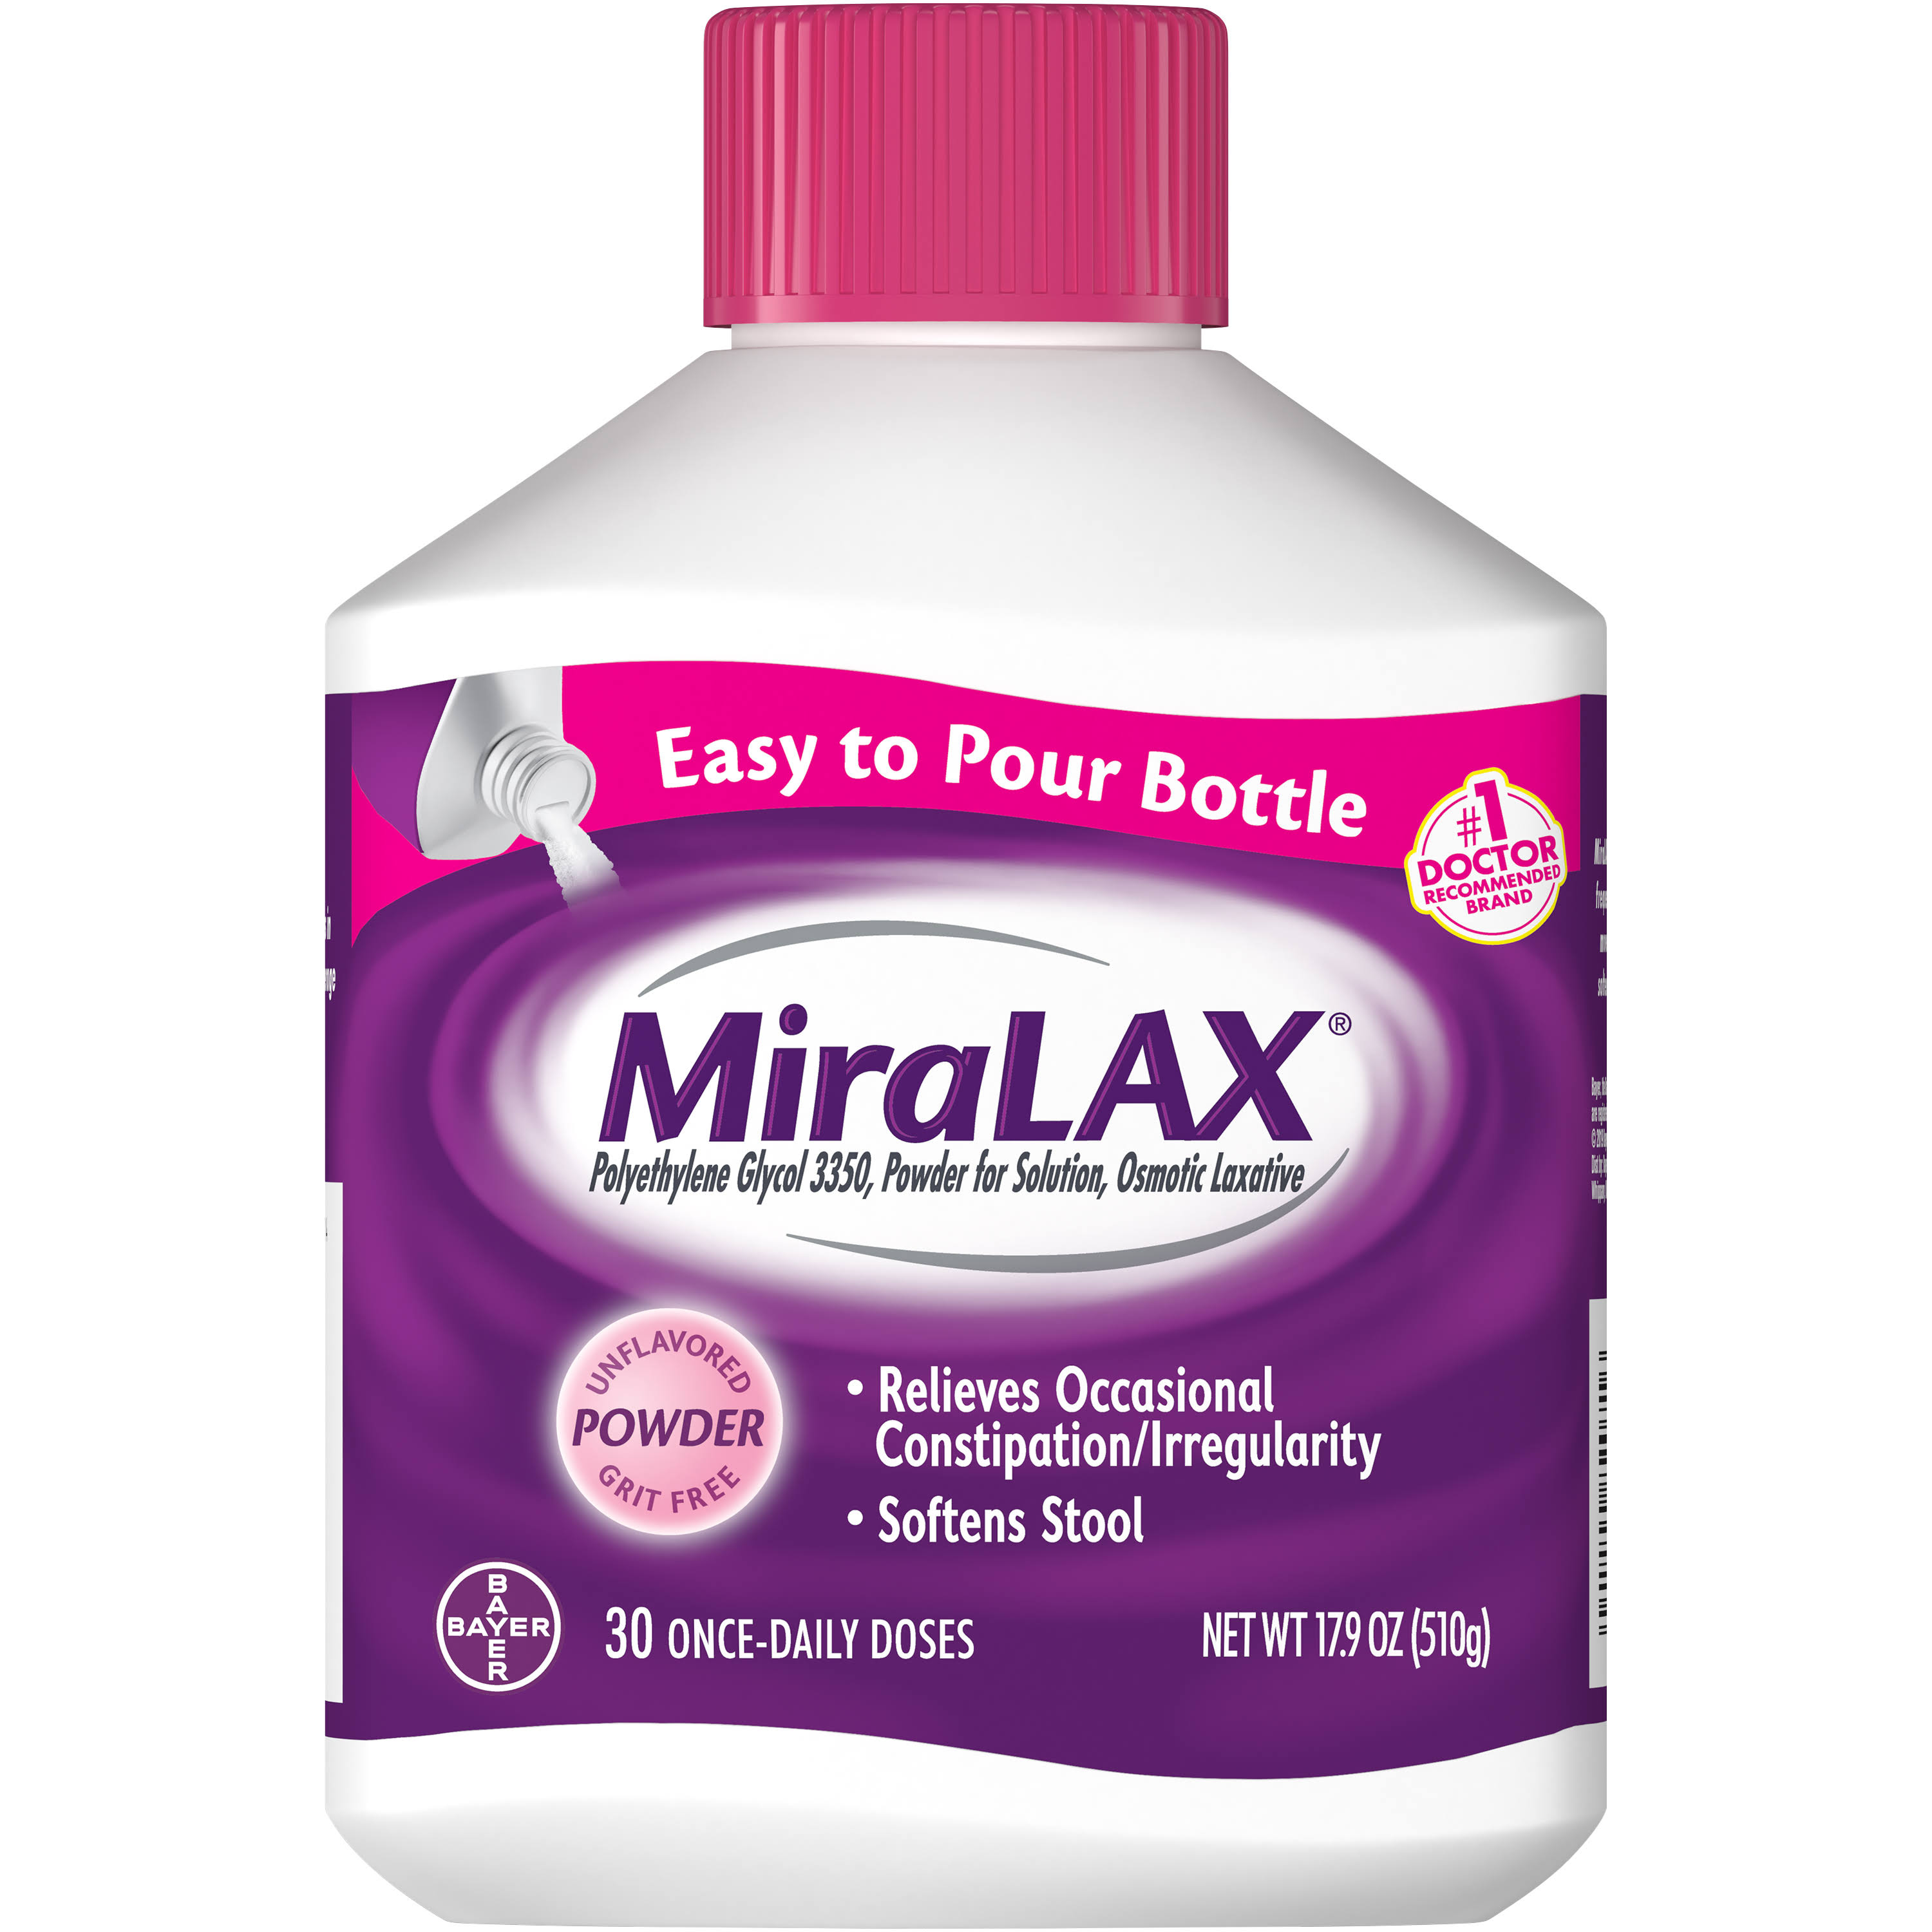 Miralax Laxative Stool Softener Powder - 510g